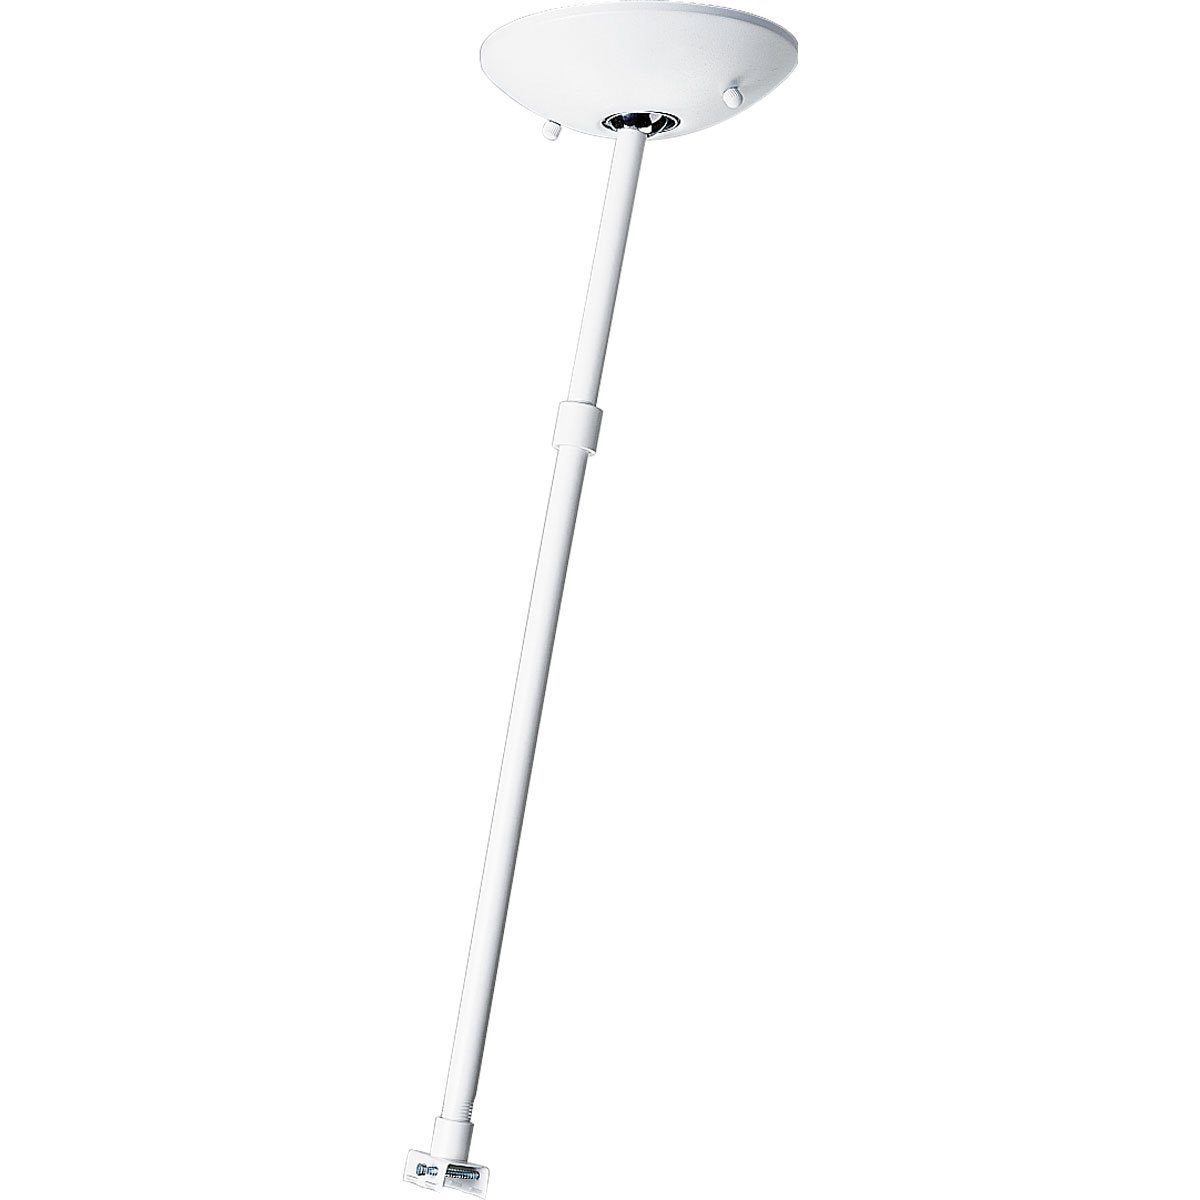 Progress Lighting P8715-28 Pendant Kit Less Power Feed Includes Outlet Box Cover Includes 6-Inch and 12-Inch Stem Lengths, and All Necessary Mounting Hardware, Bright White